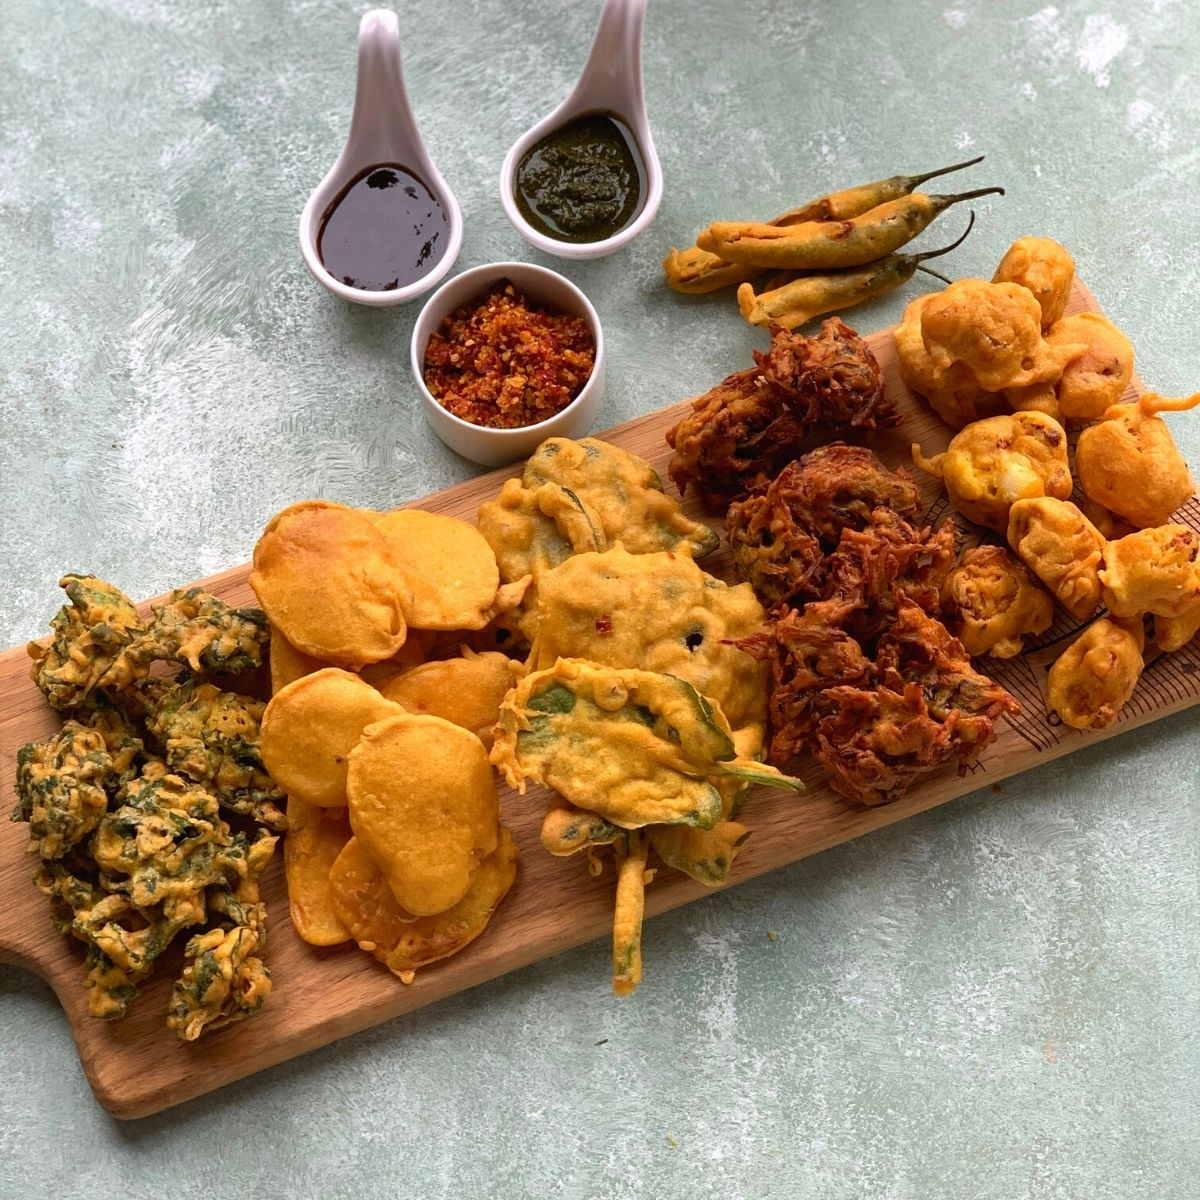 Tea time Pakora Platter is an addictive platter which has 6 different types of pakoras. They are yummy and crunchy snack or tea time fritters. Fritters are served on a wooden board with Coriander, Imli and Garlic chutneys on the side.